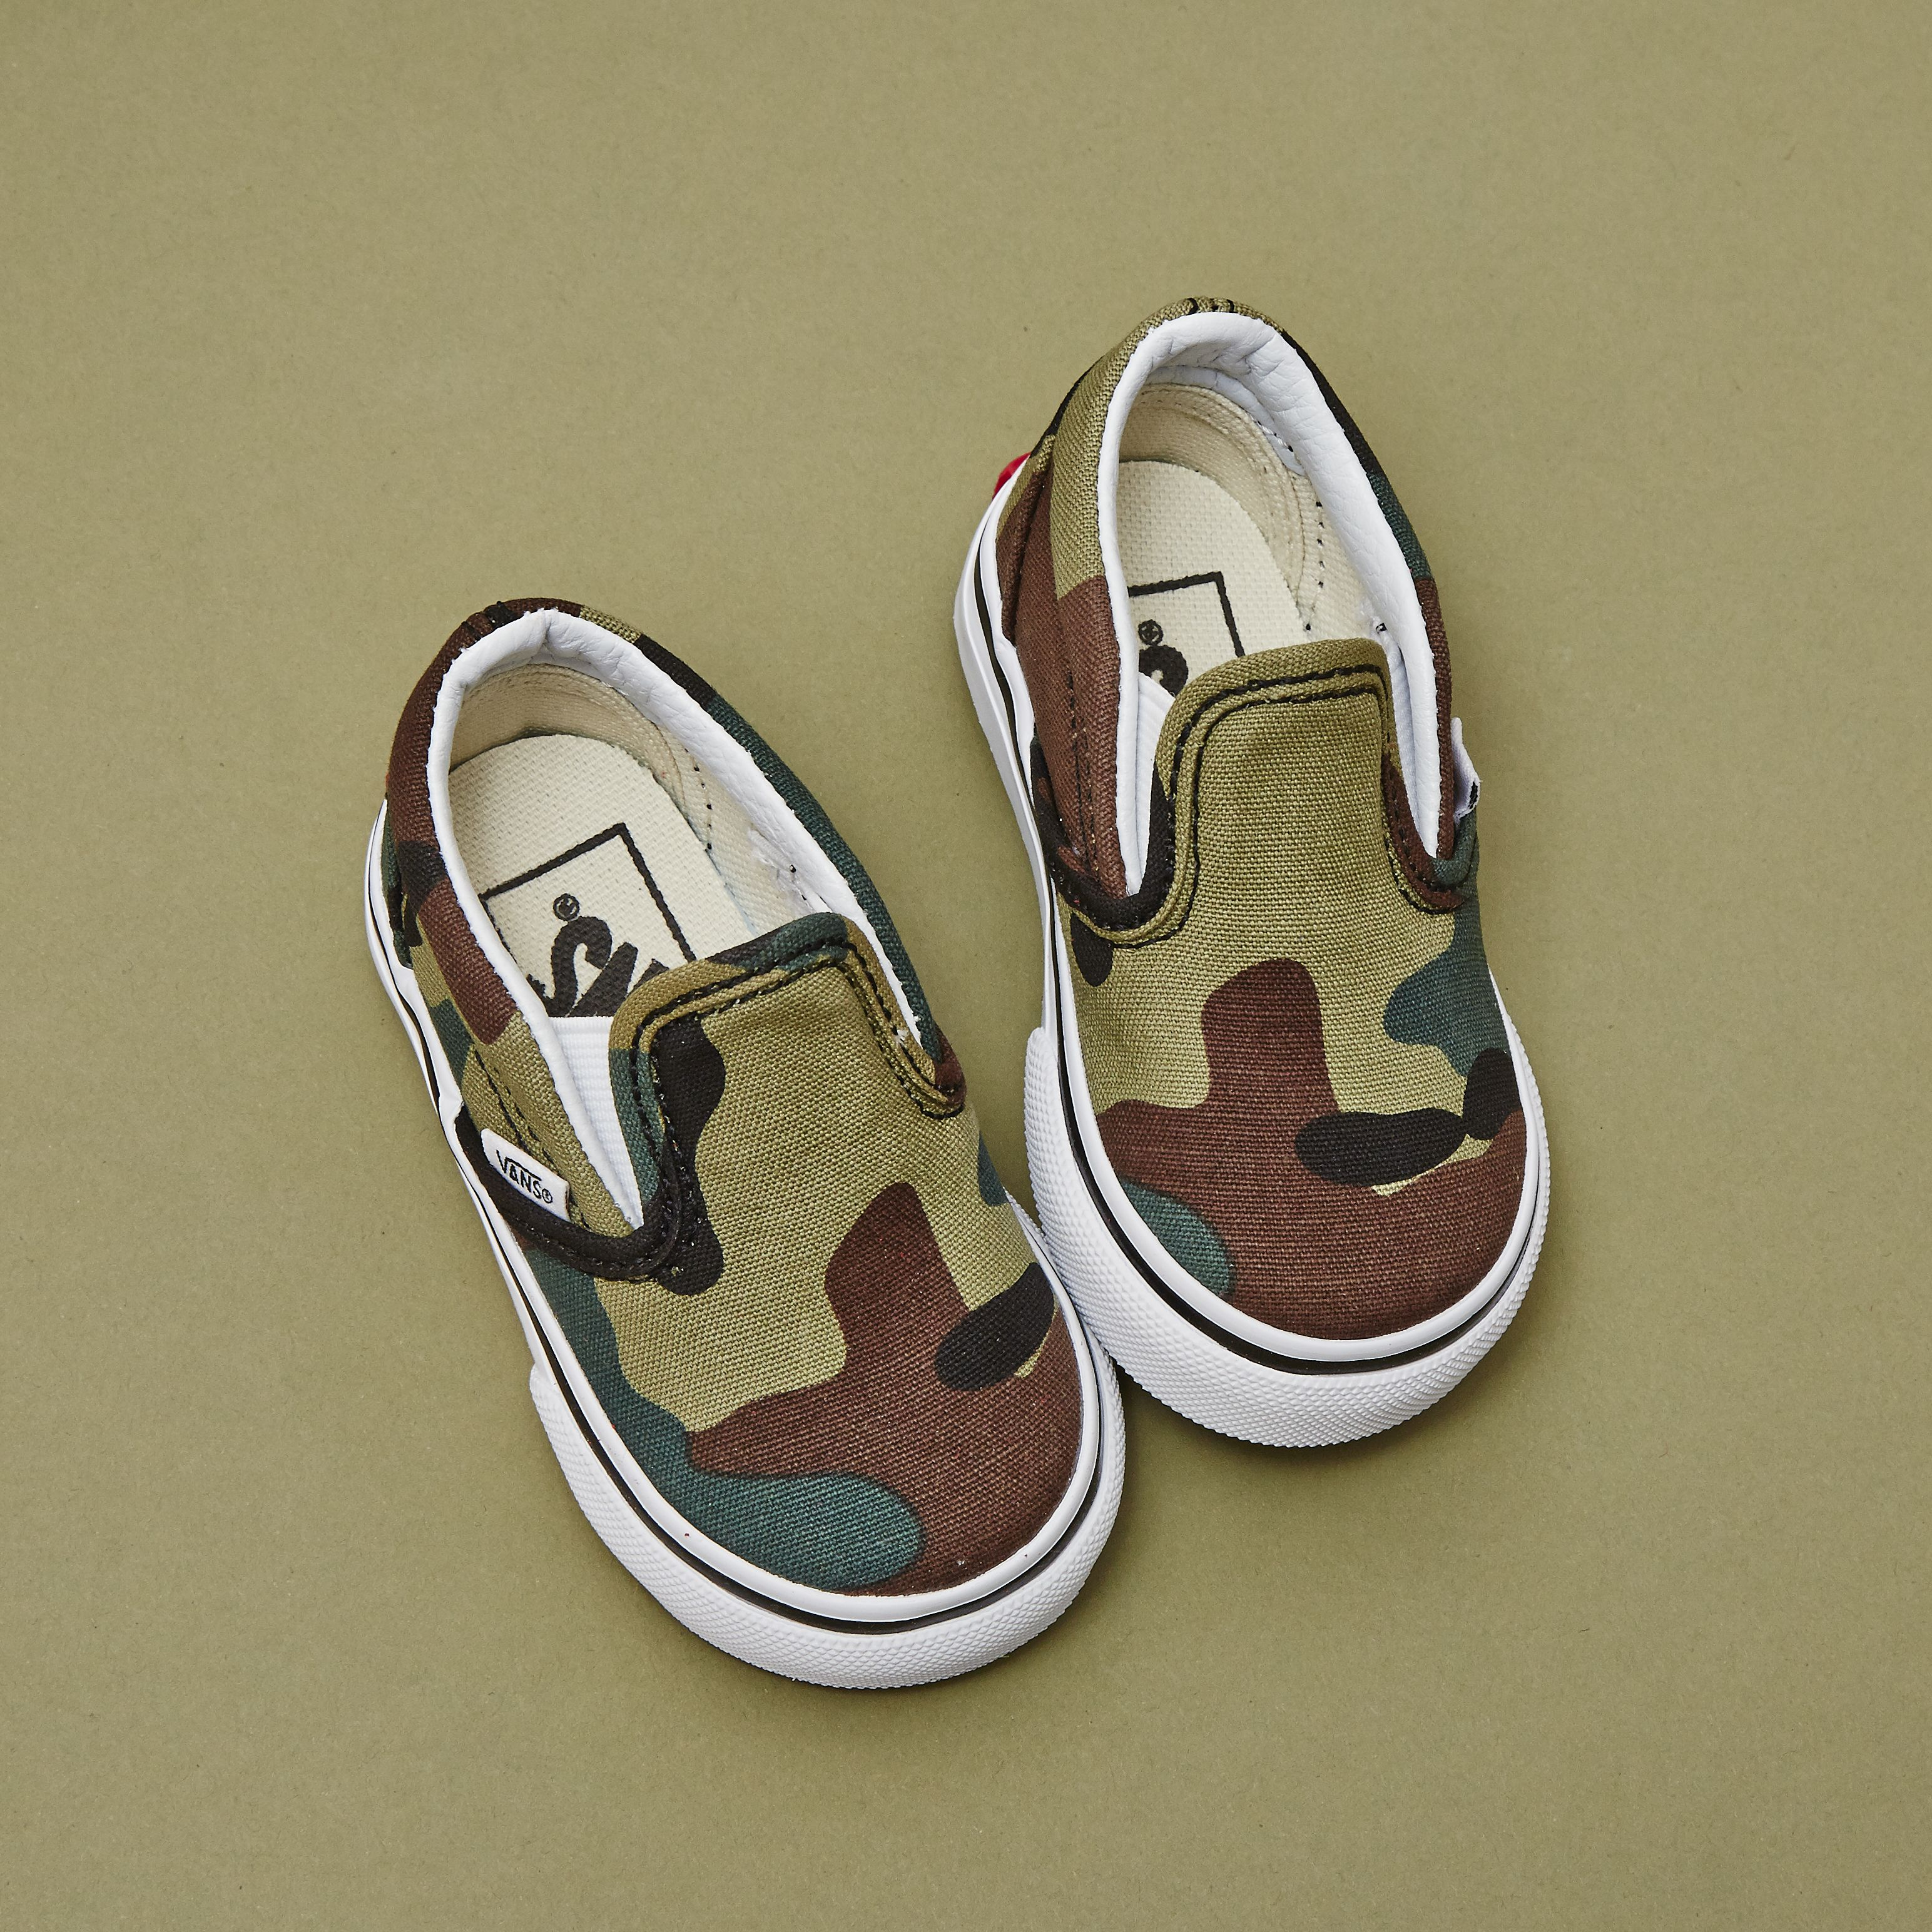 Vans Slip On Toddler Woodland Camo Shoes